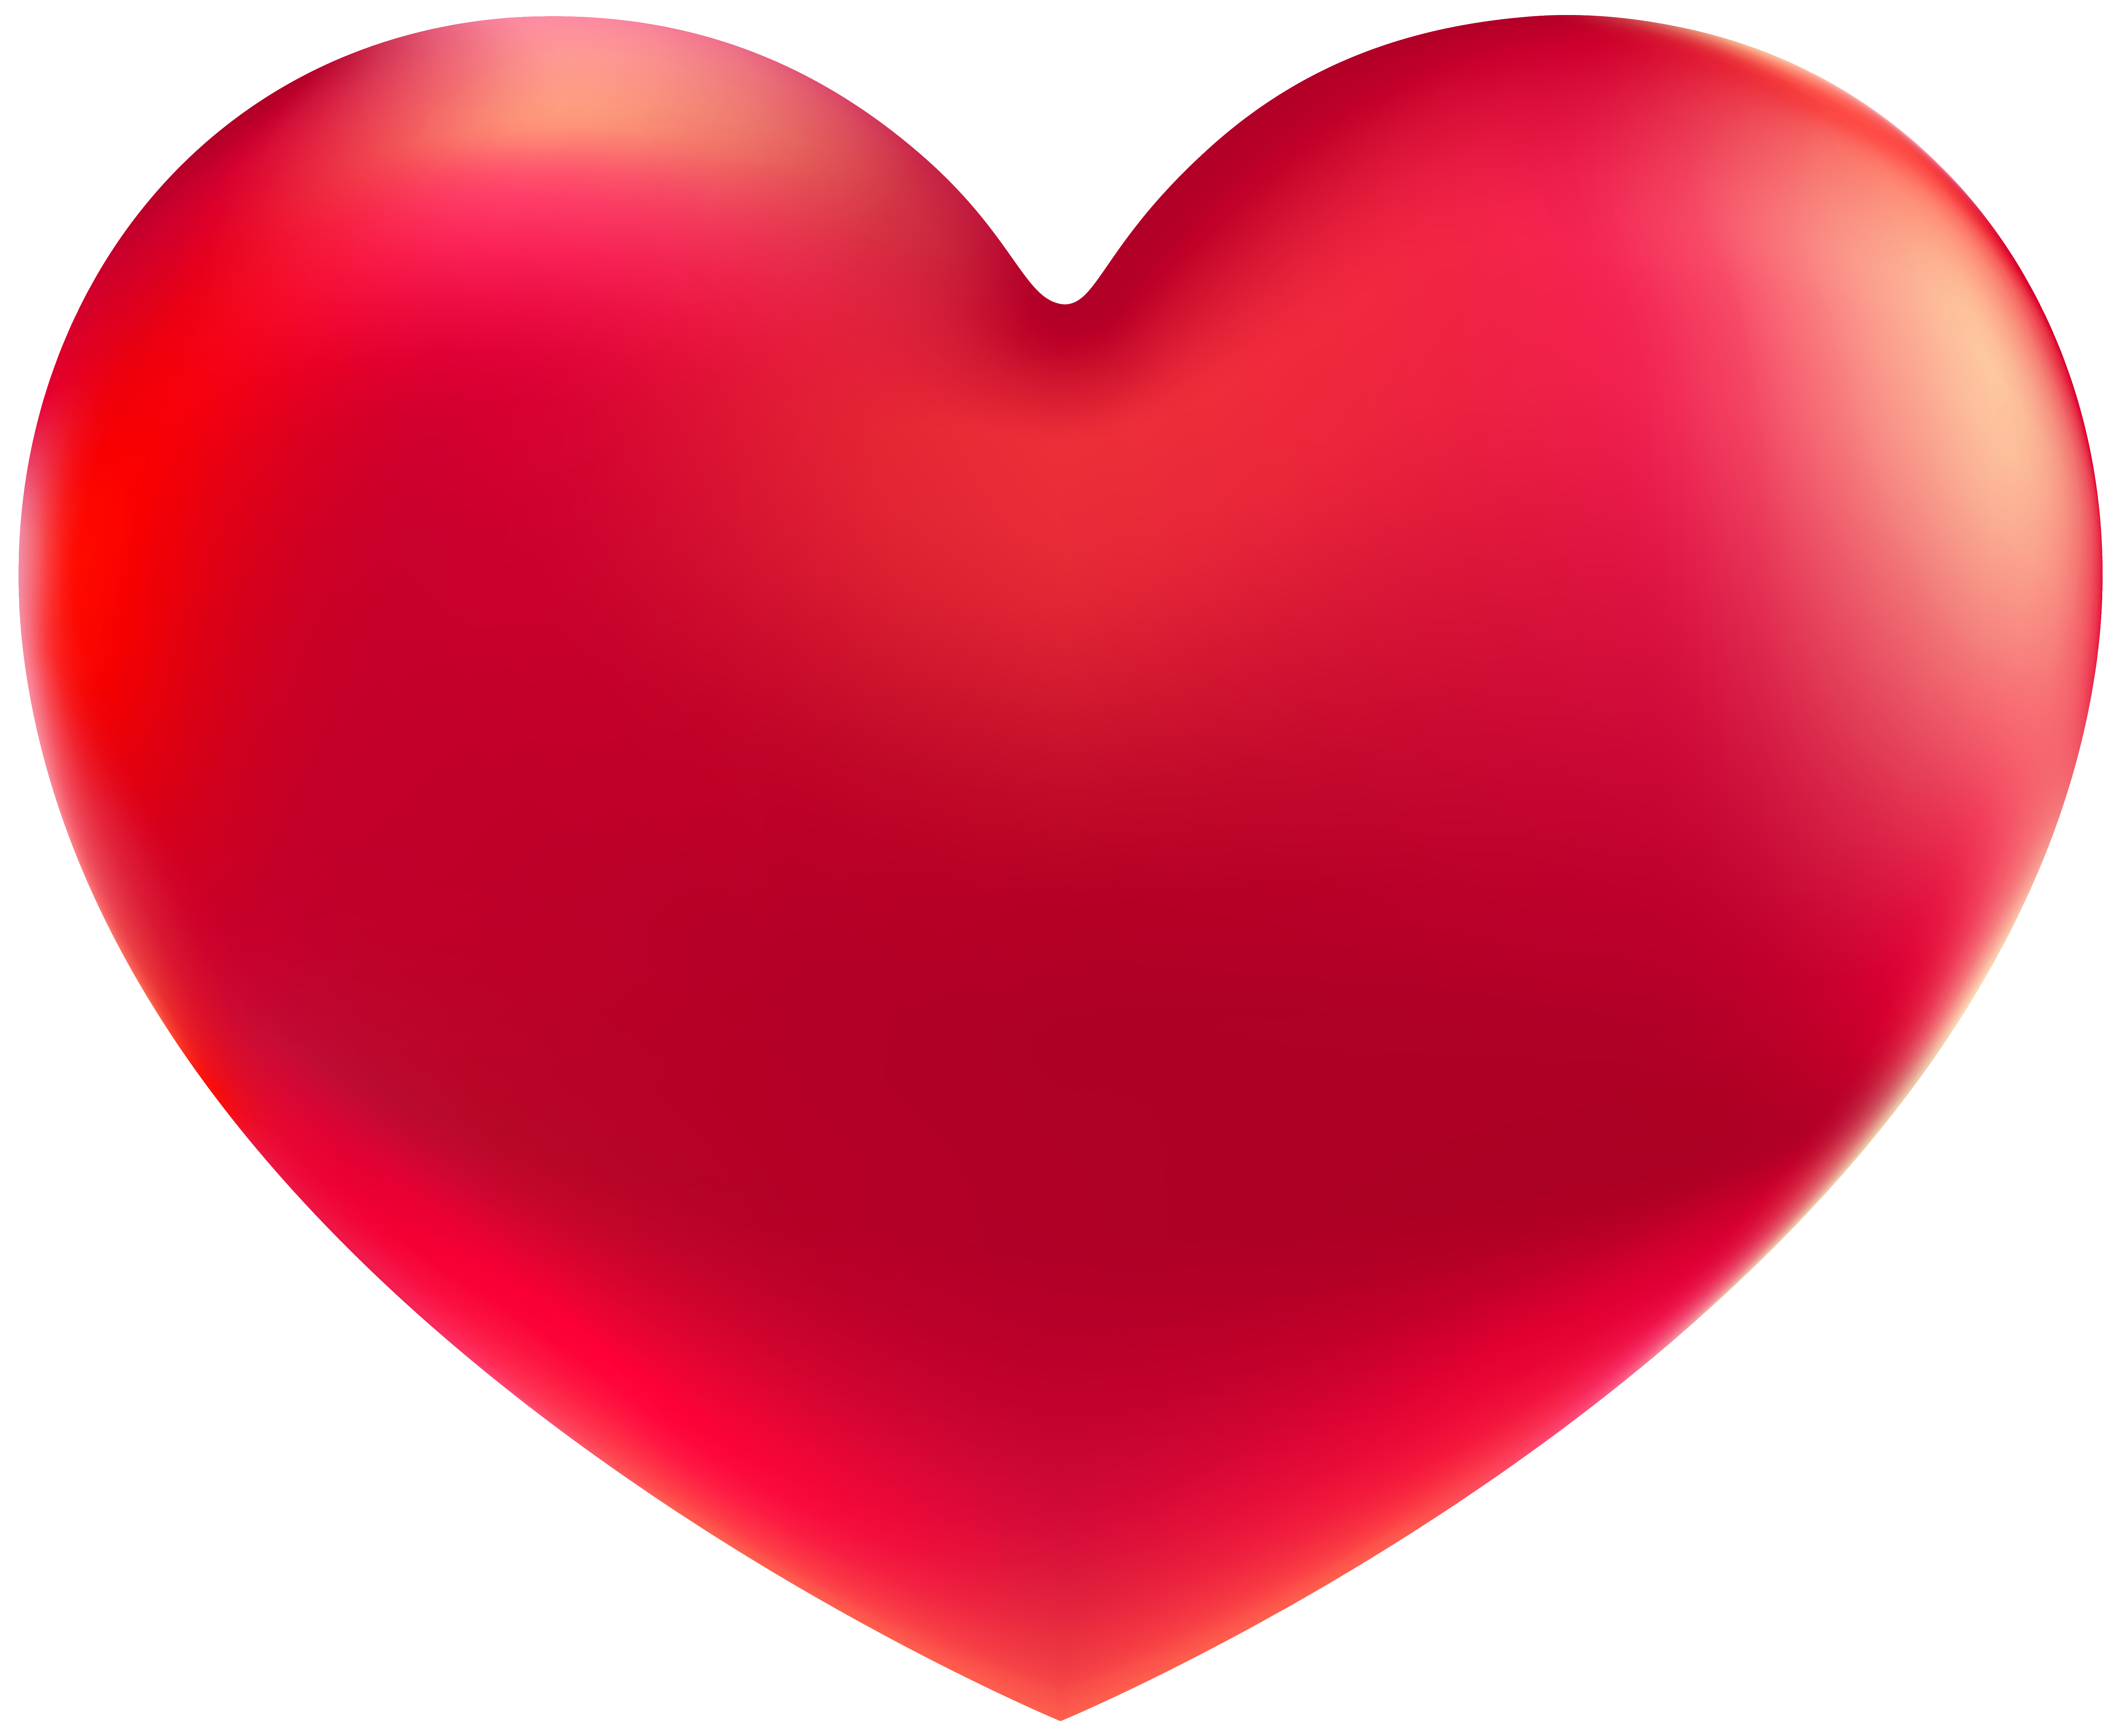 Red heart png image. Hearts clipart book